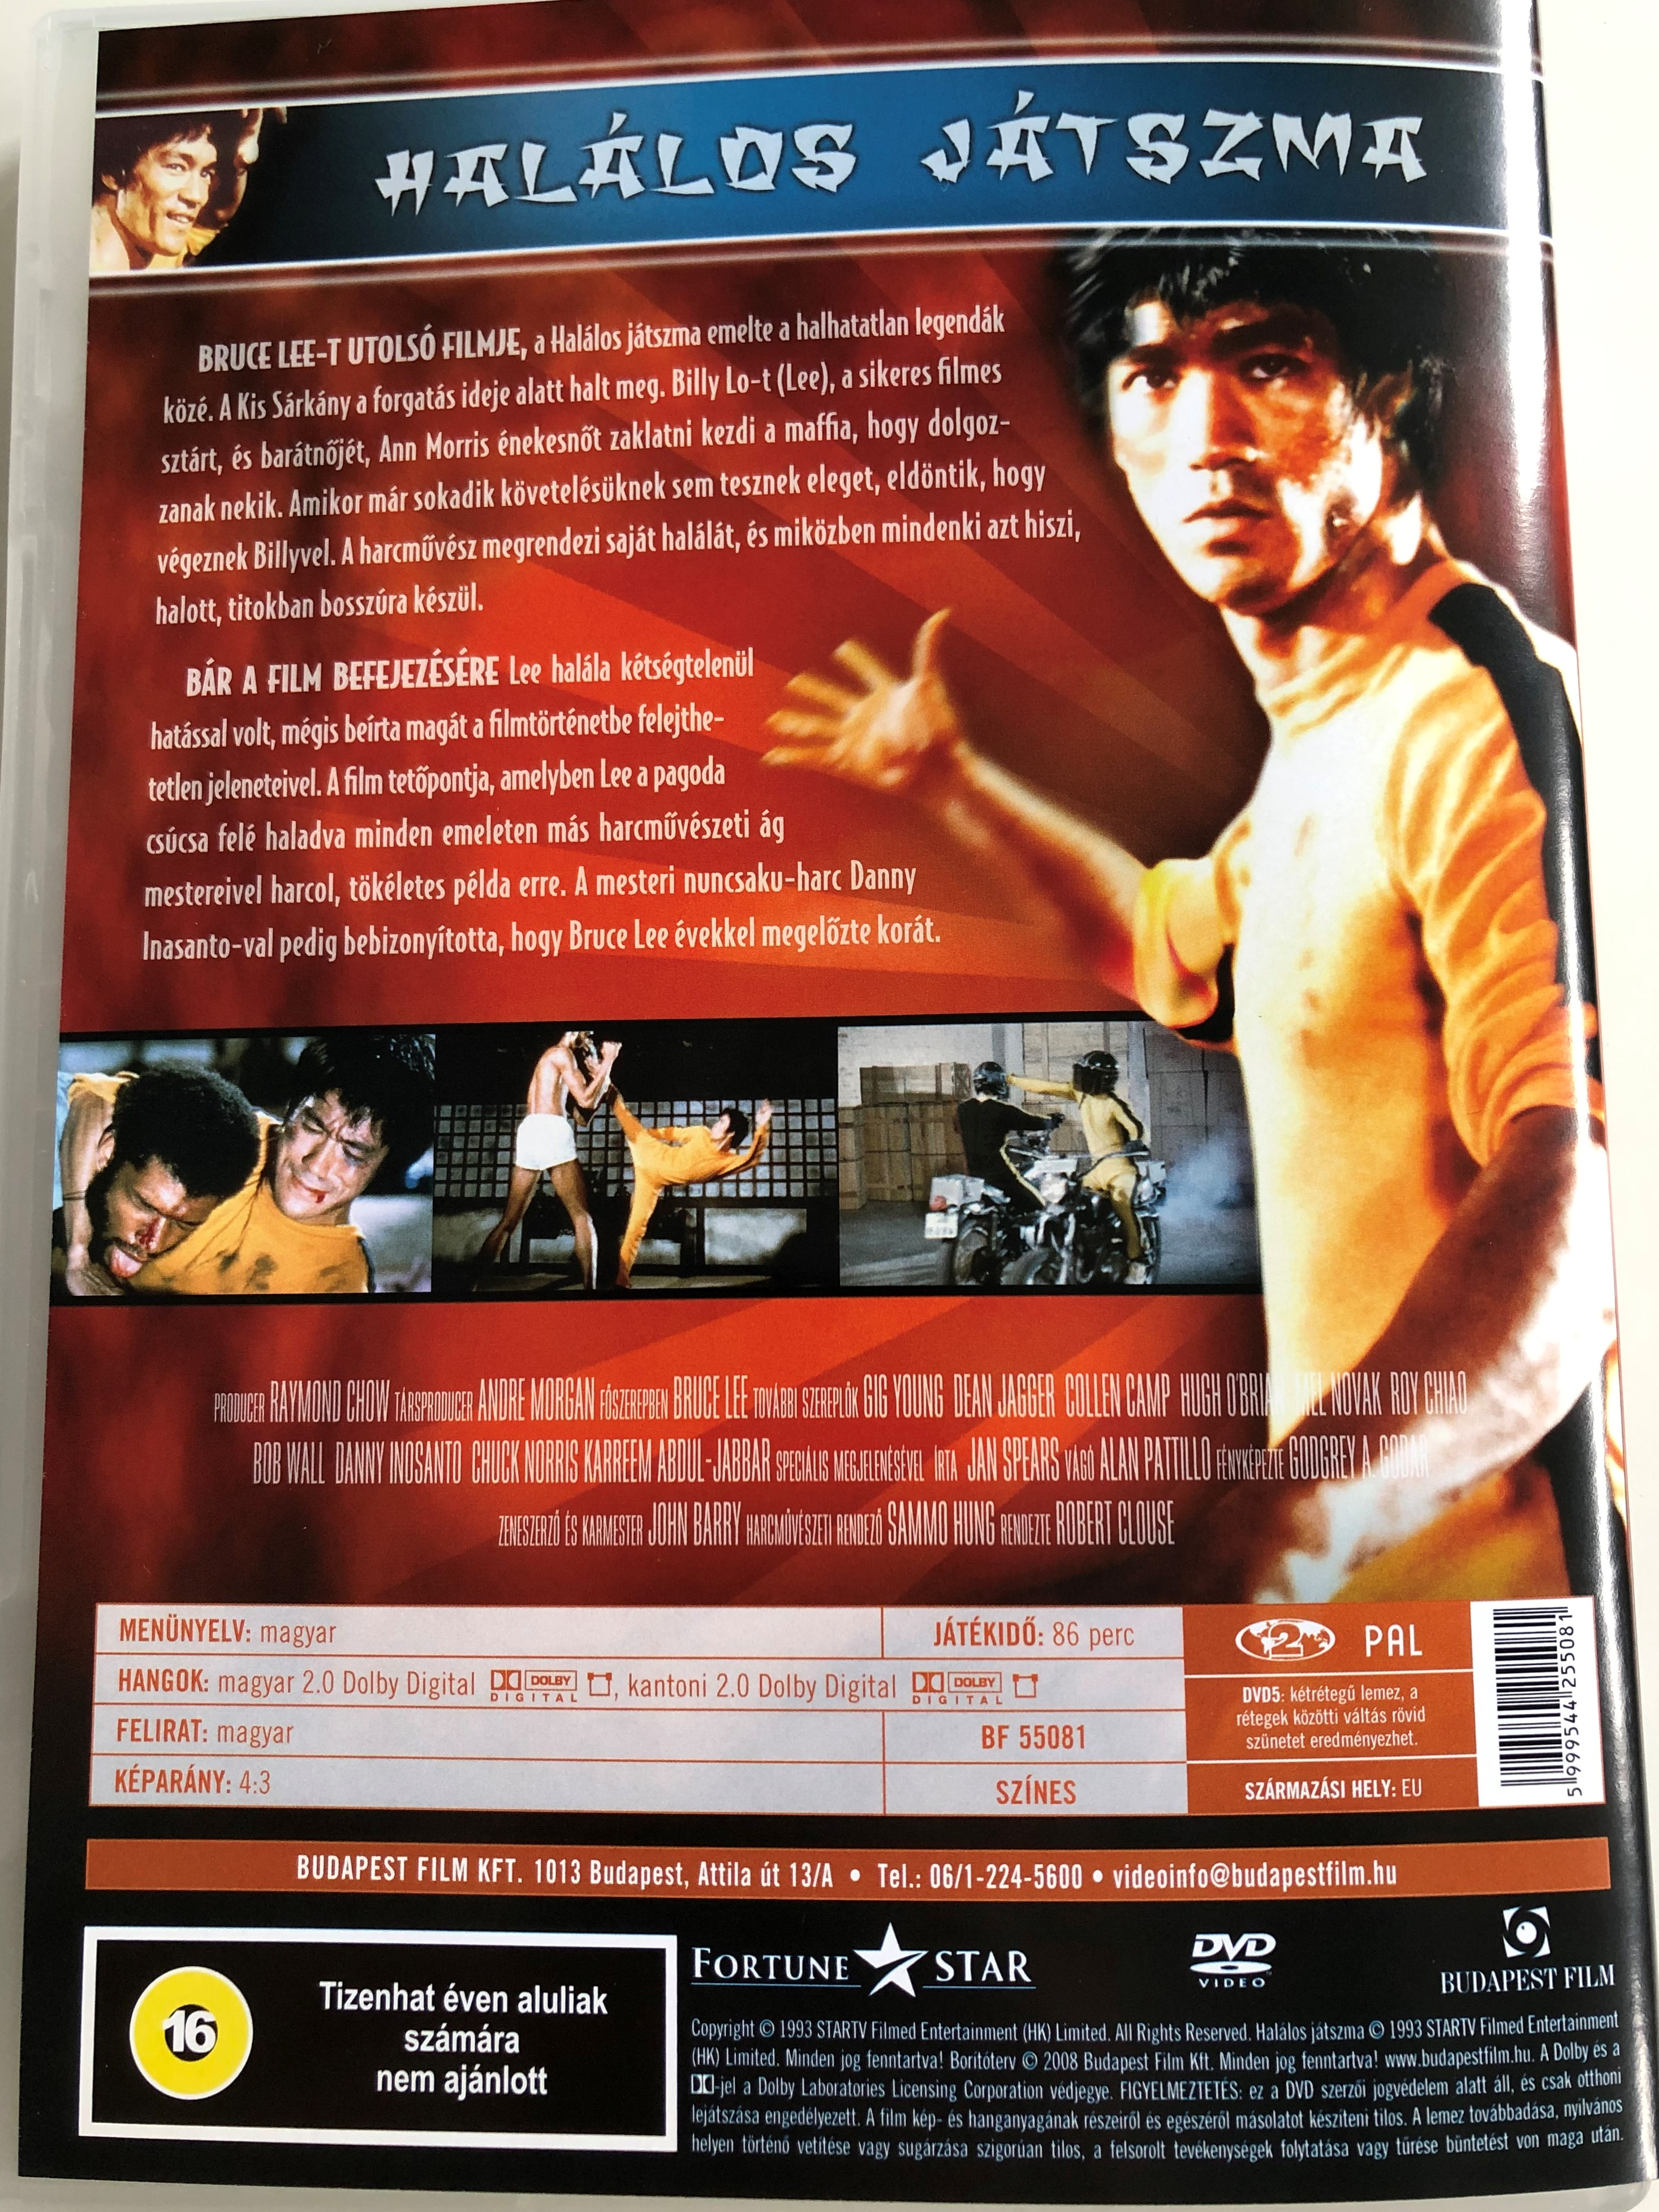 game-of-death-dvd-hal-los-j-tszma-directed-by-robert-clouse-starring-bruce-lee-gig-young-2.jpg